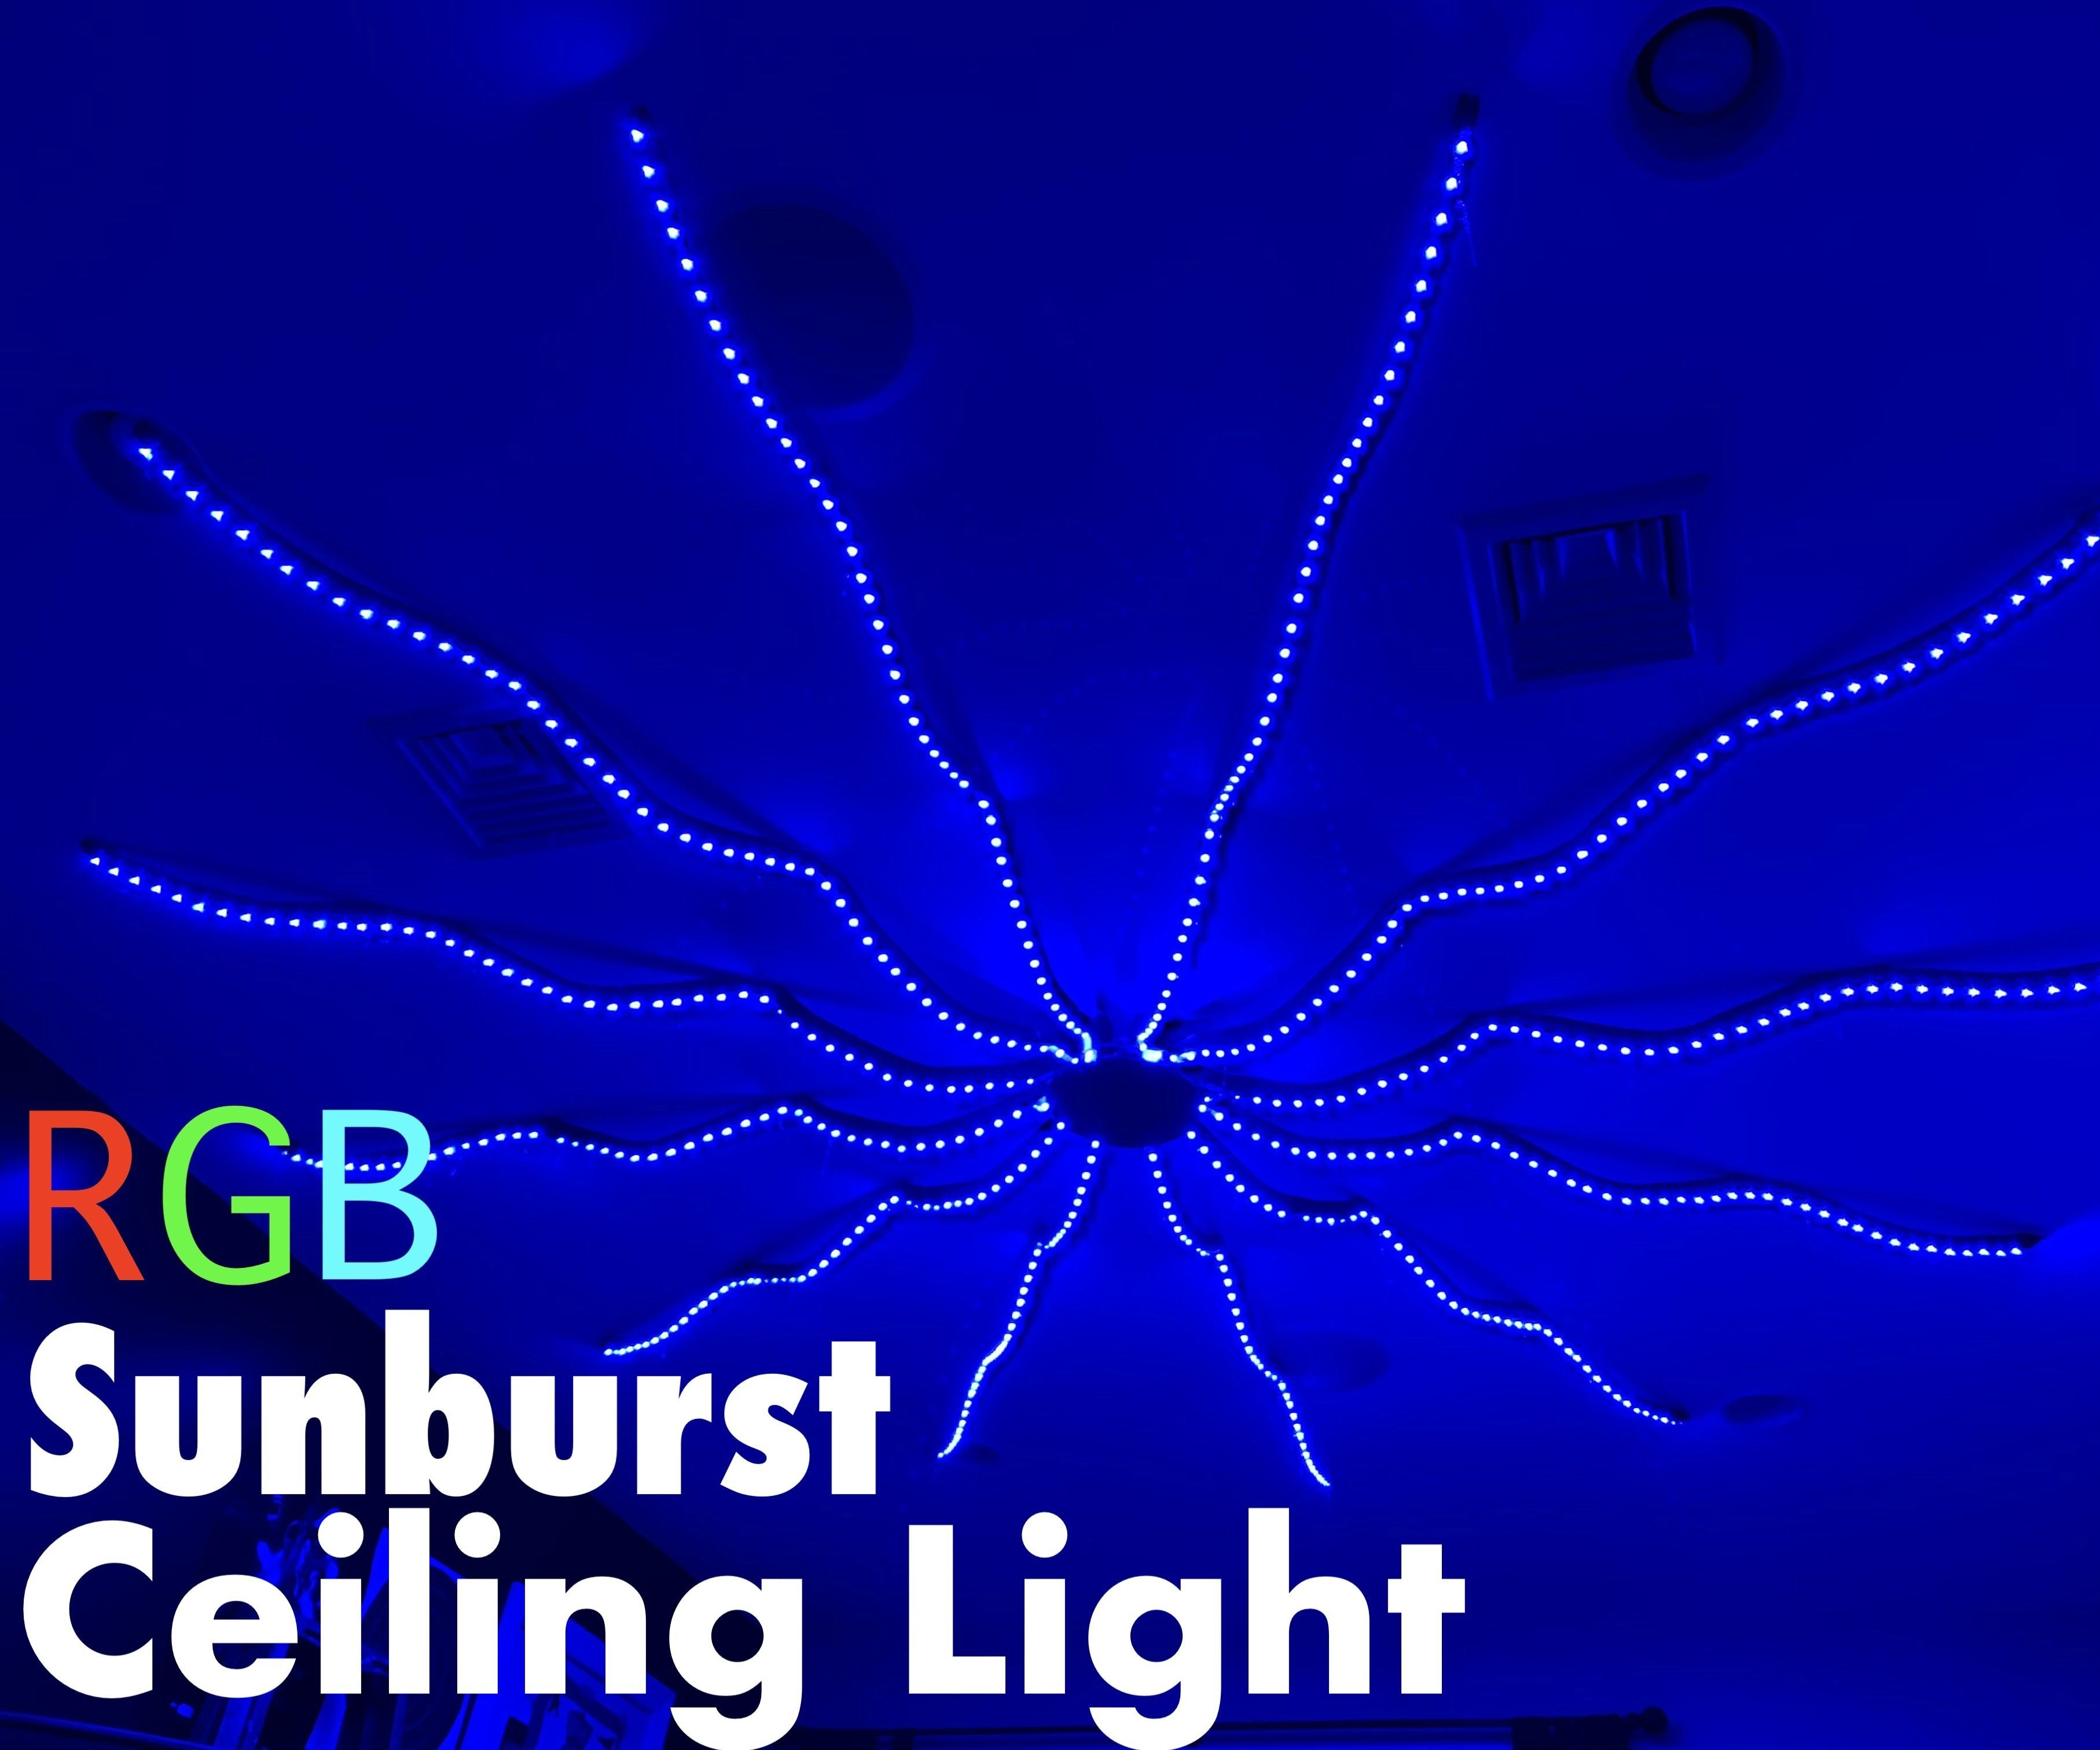 RGB Sunburst Ceiling Light